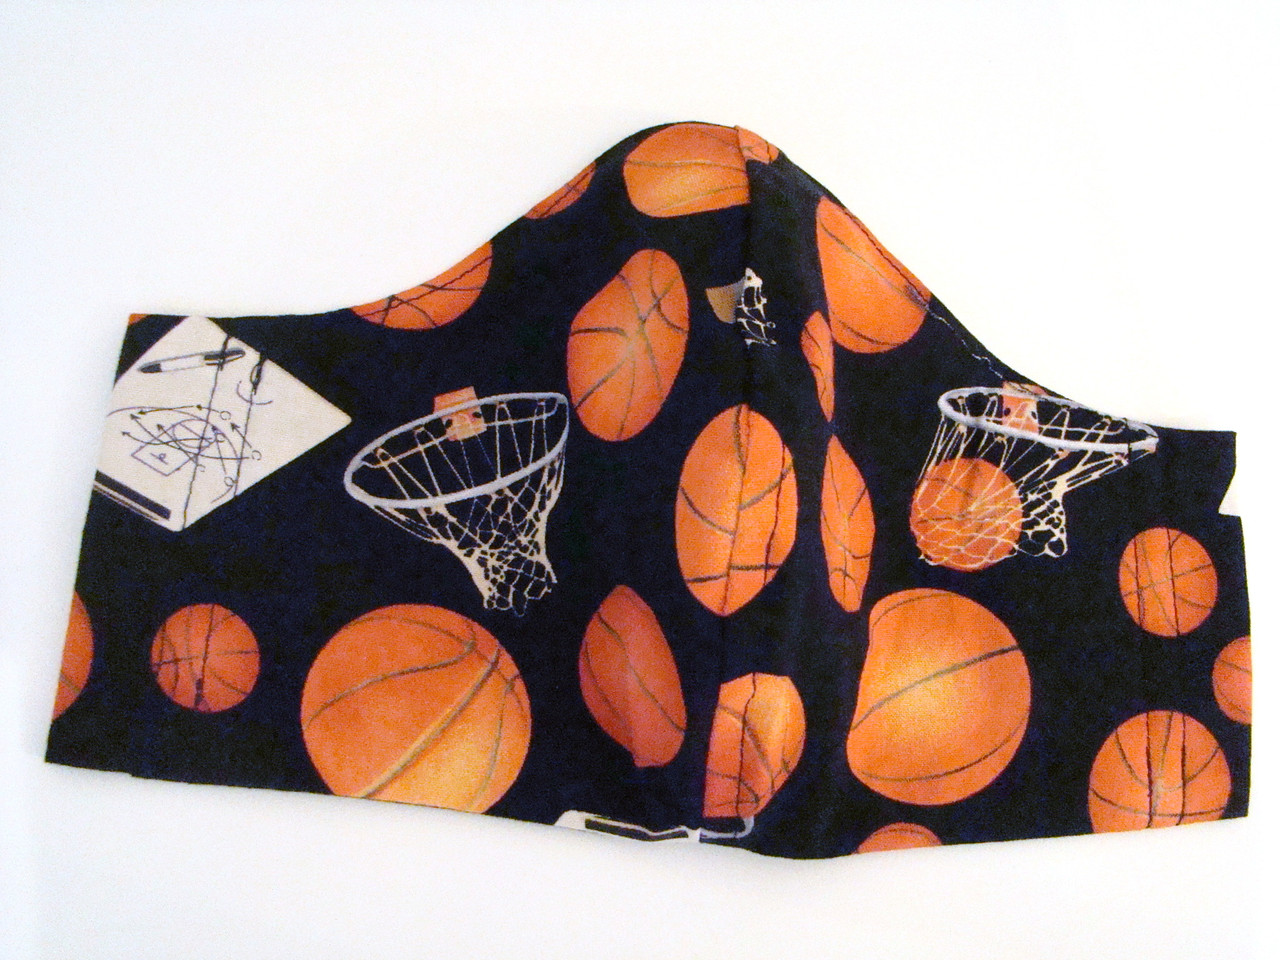 Face Mask - Basketball and Hoops